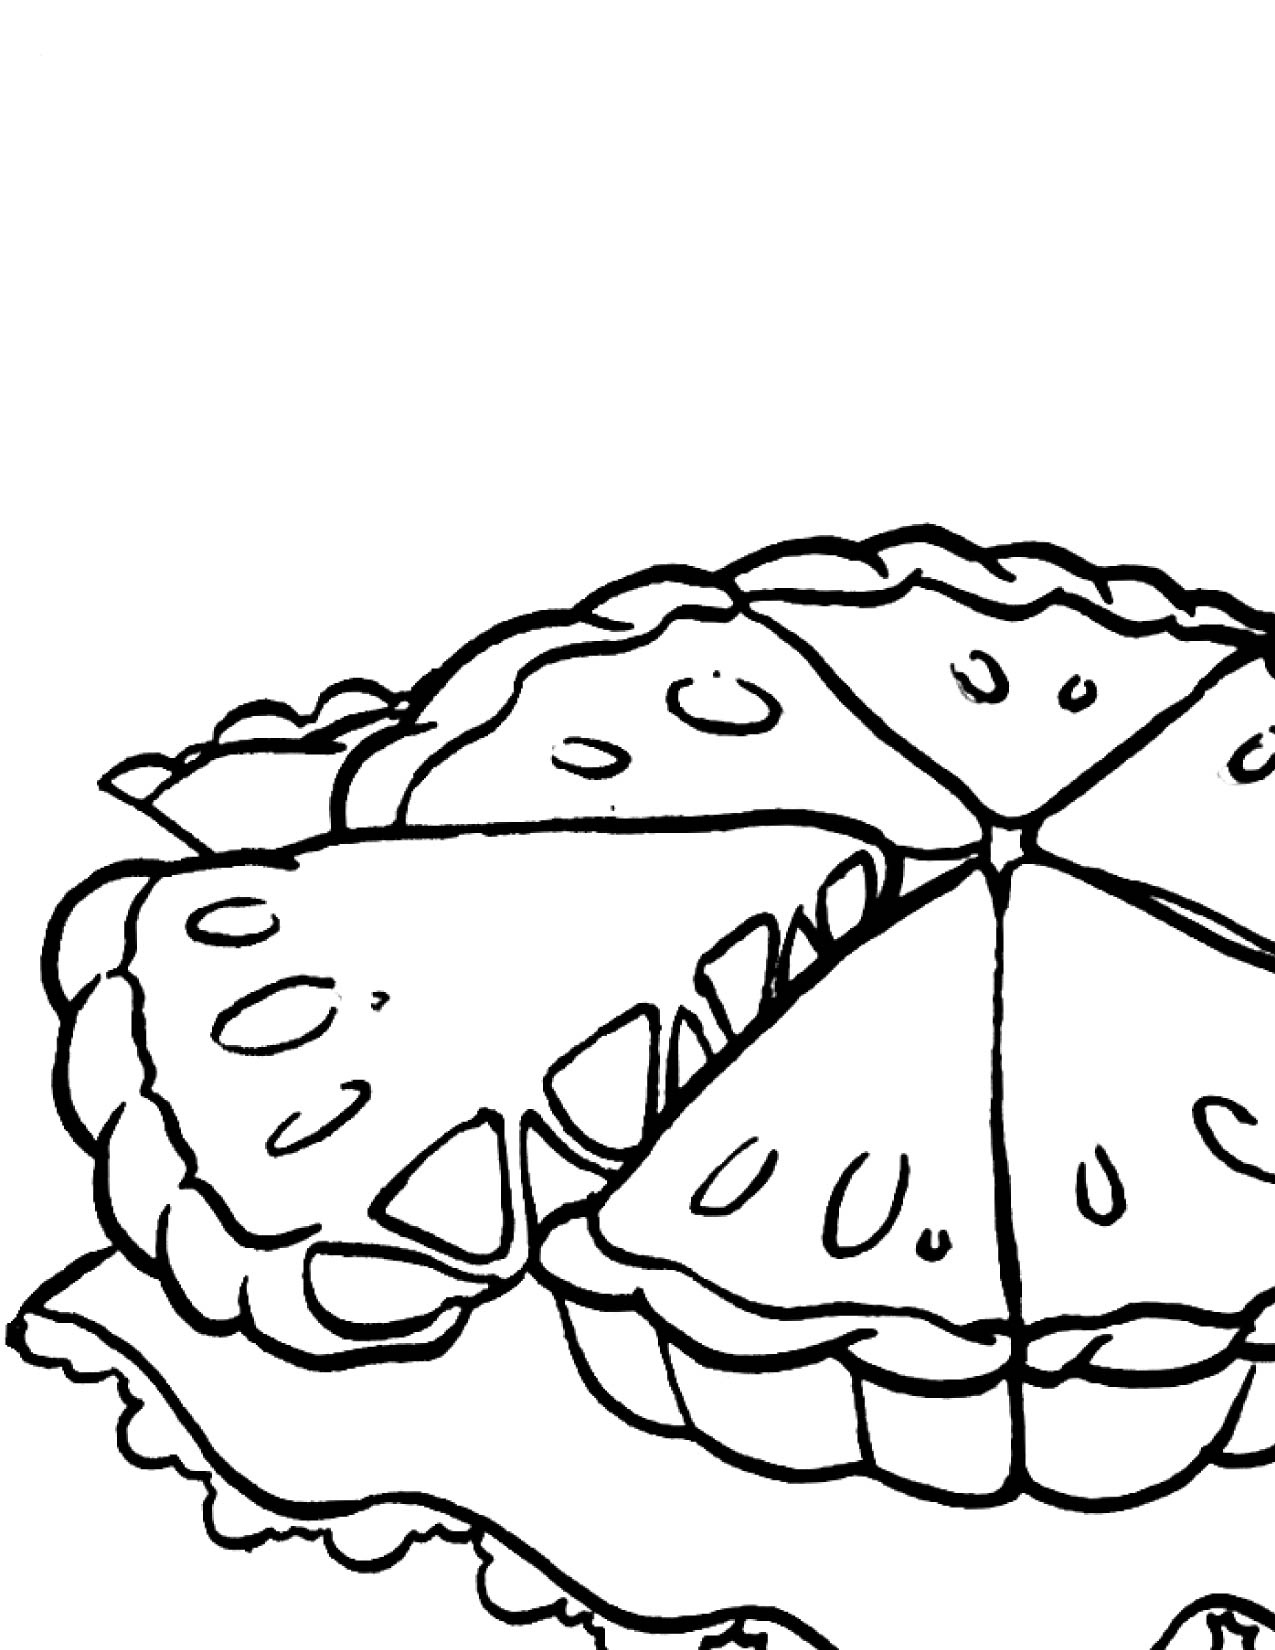 1275x1650 Apple Pie Coloring Page